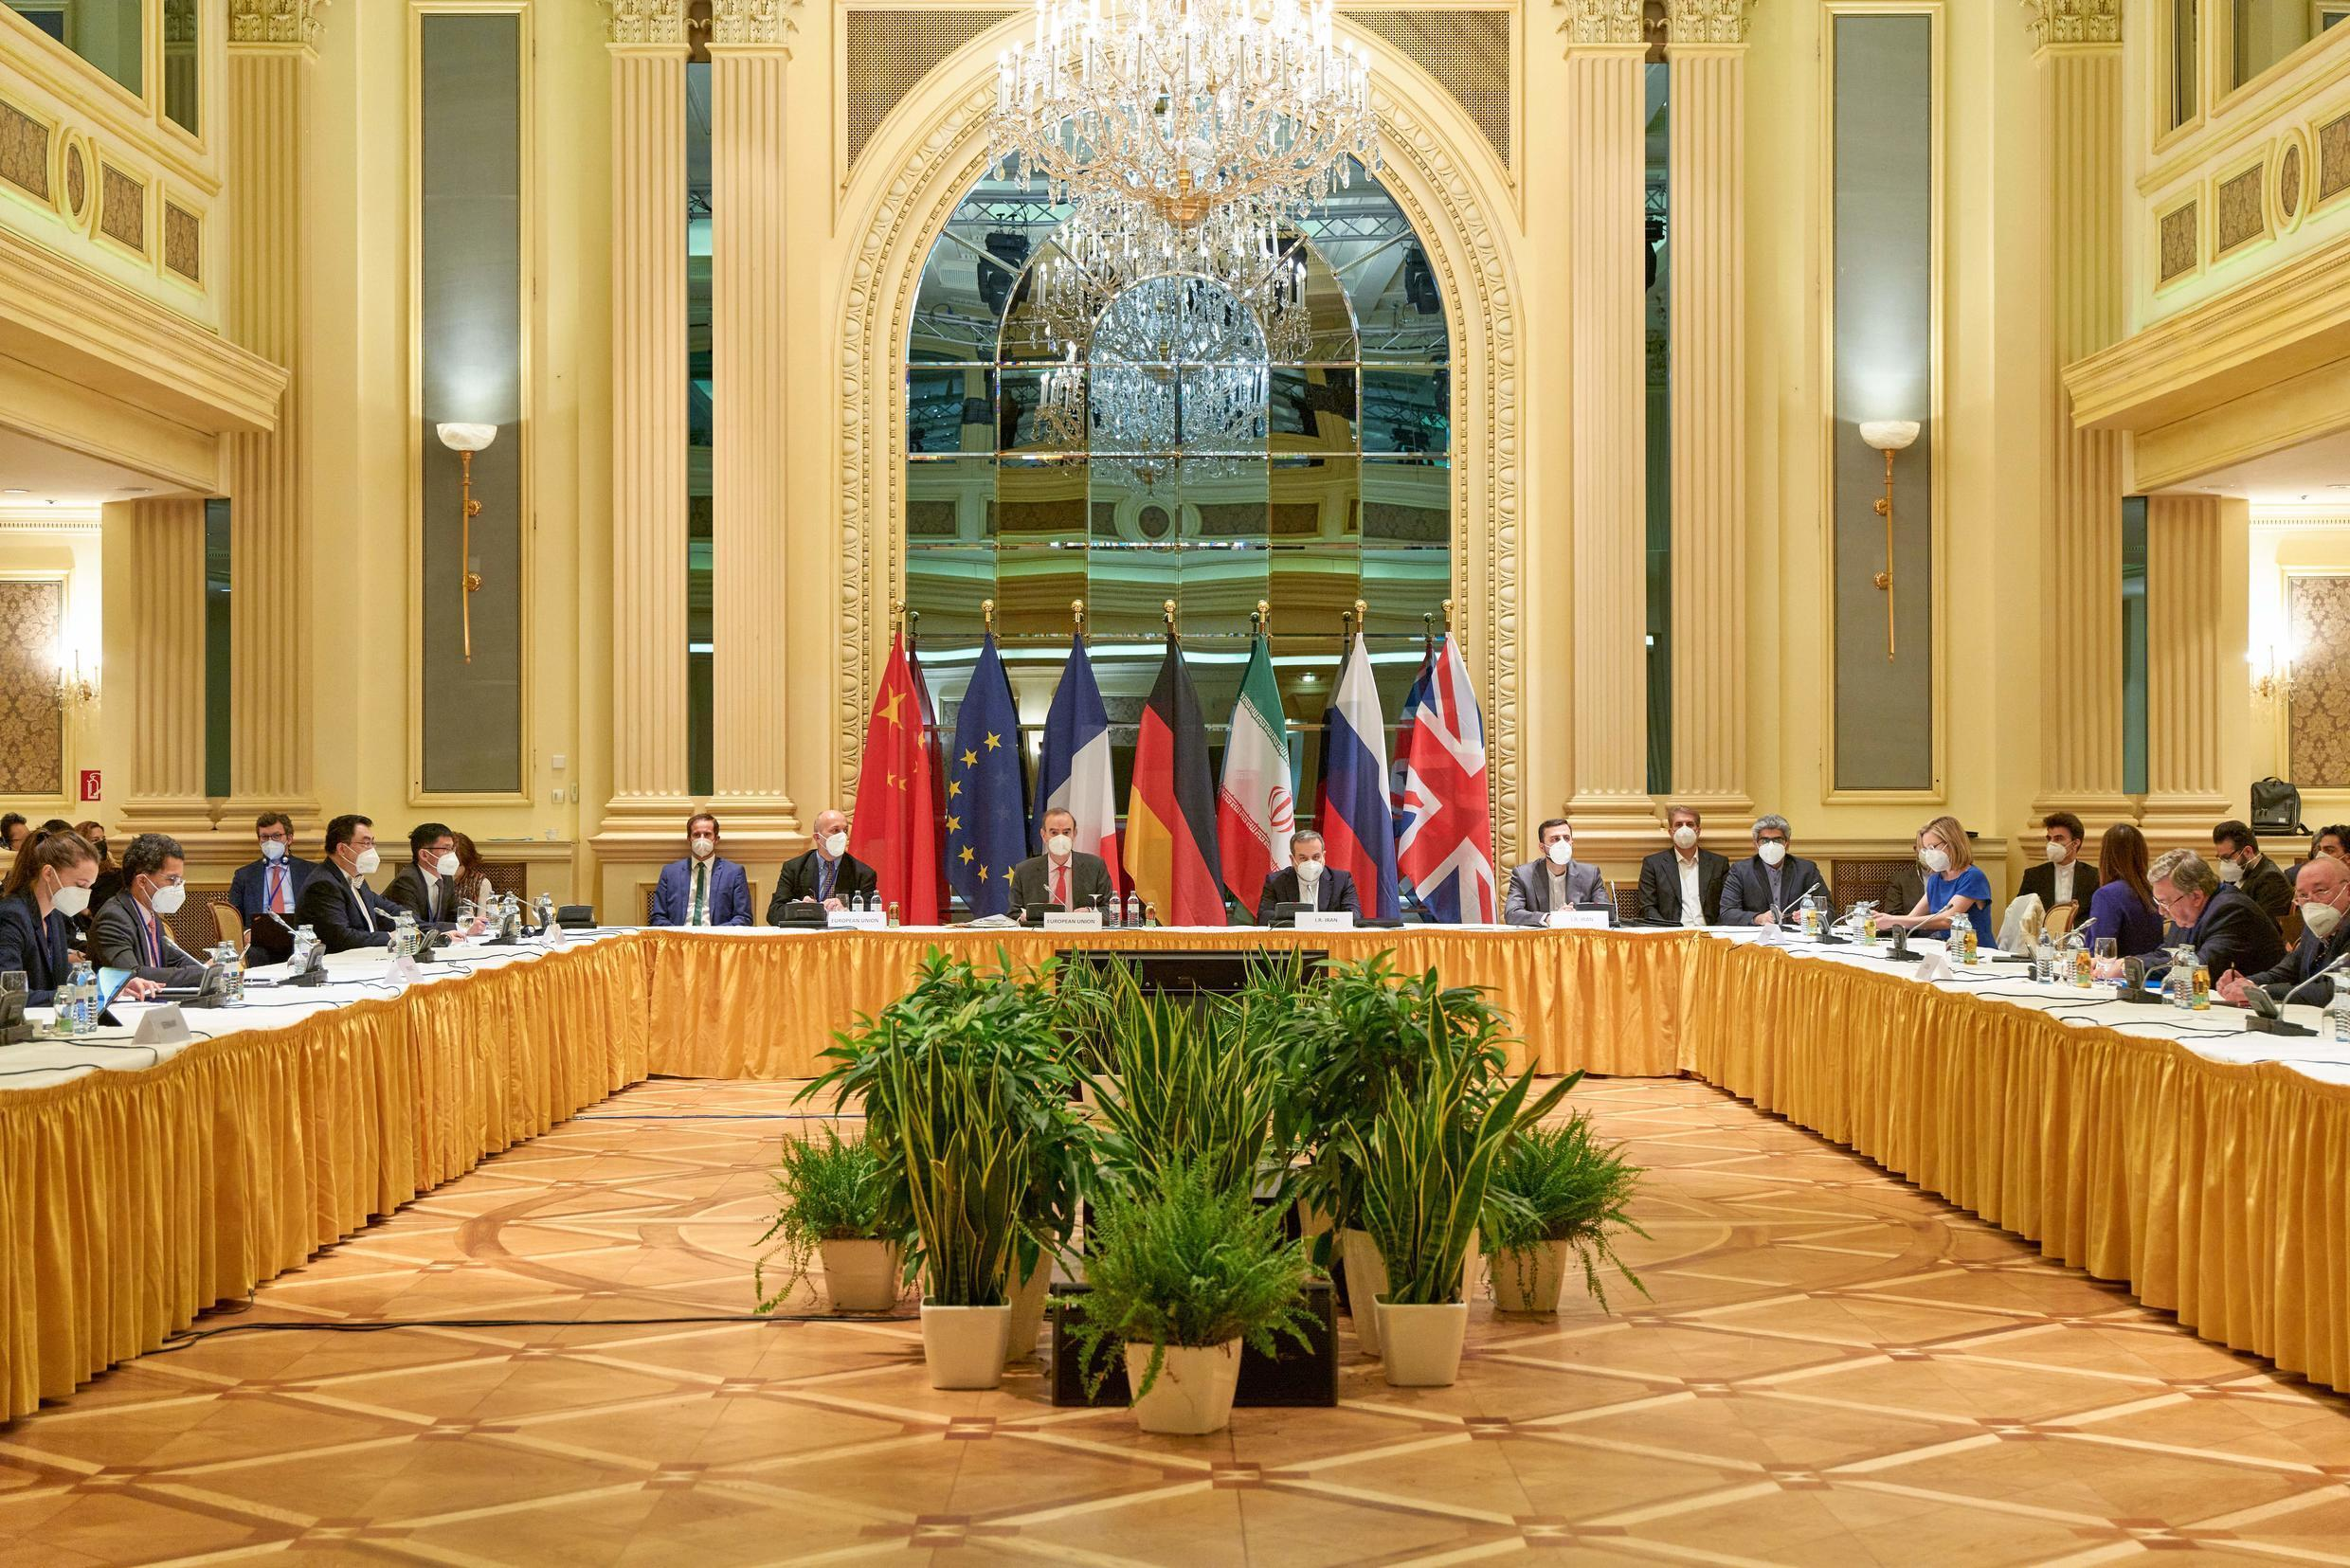 Delegation members from the parties to the Iran nuclear deal - Germany, France, Britain, China, Russia and Iran -- meet in Vienna